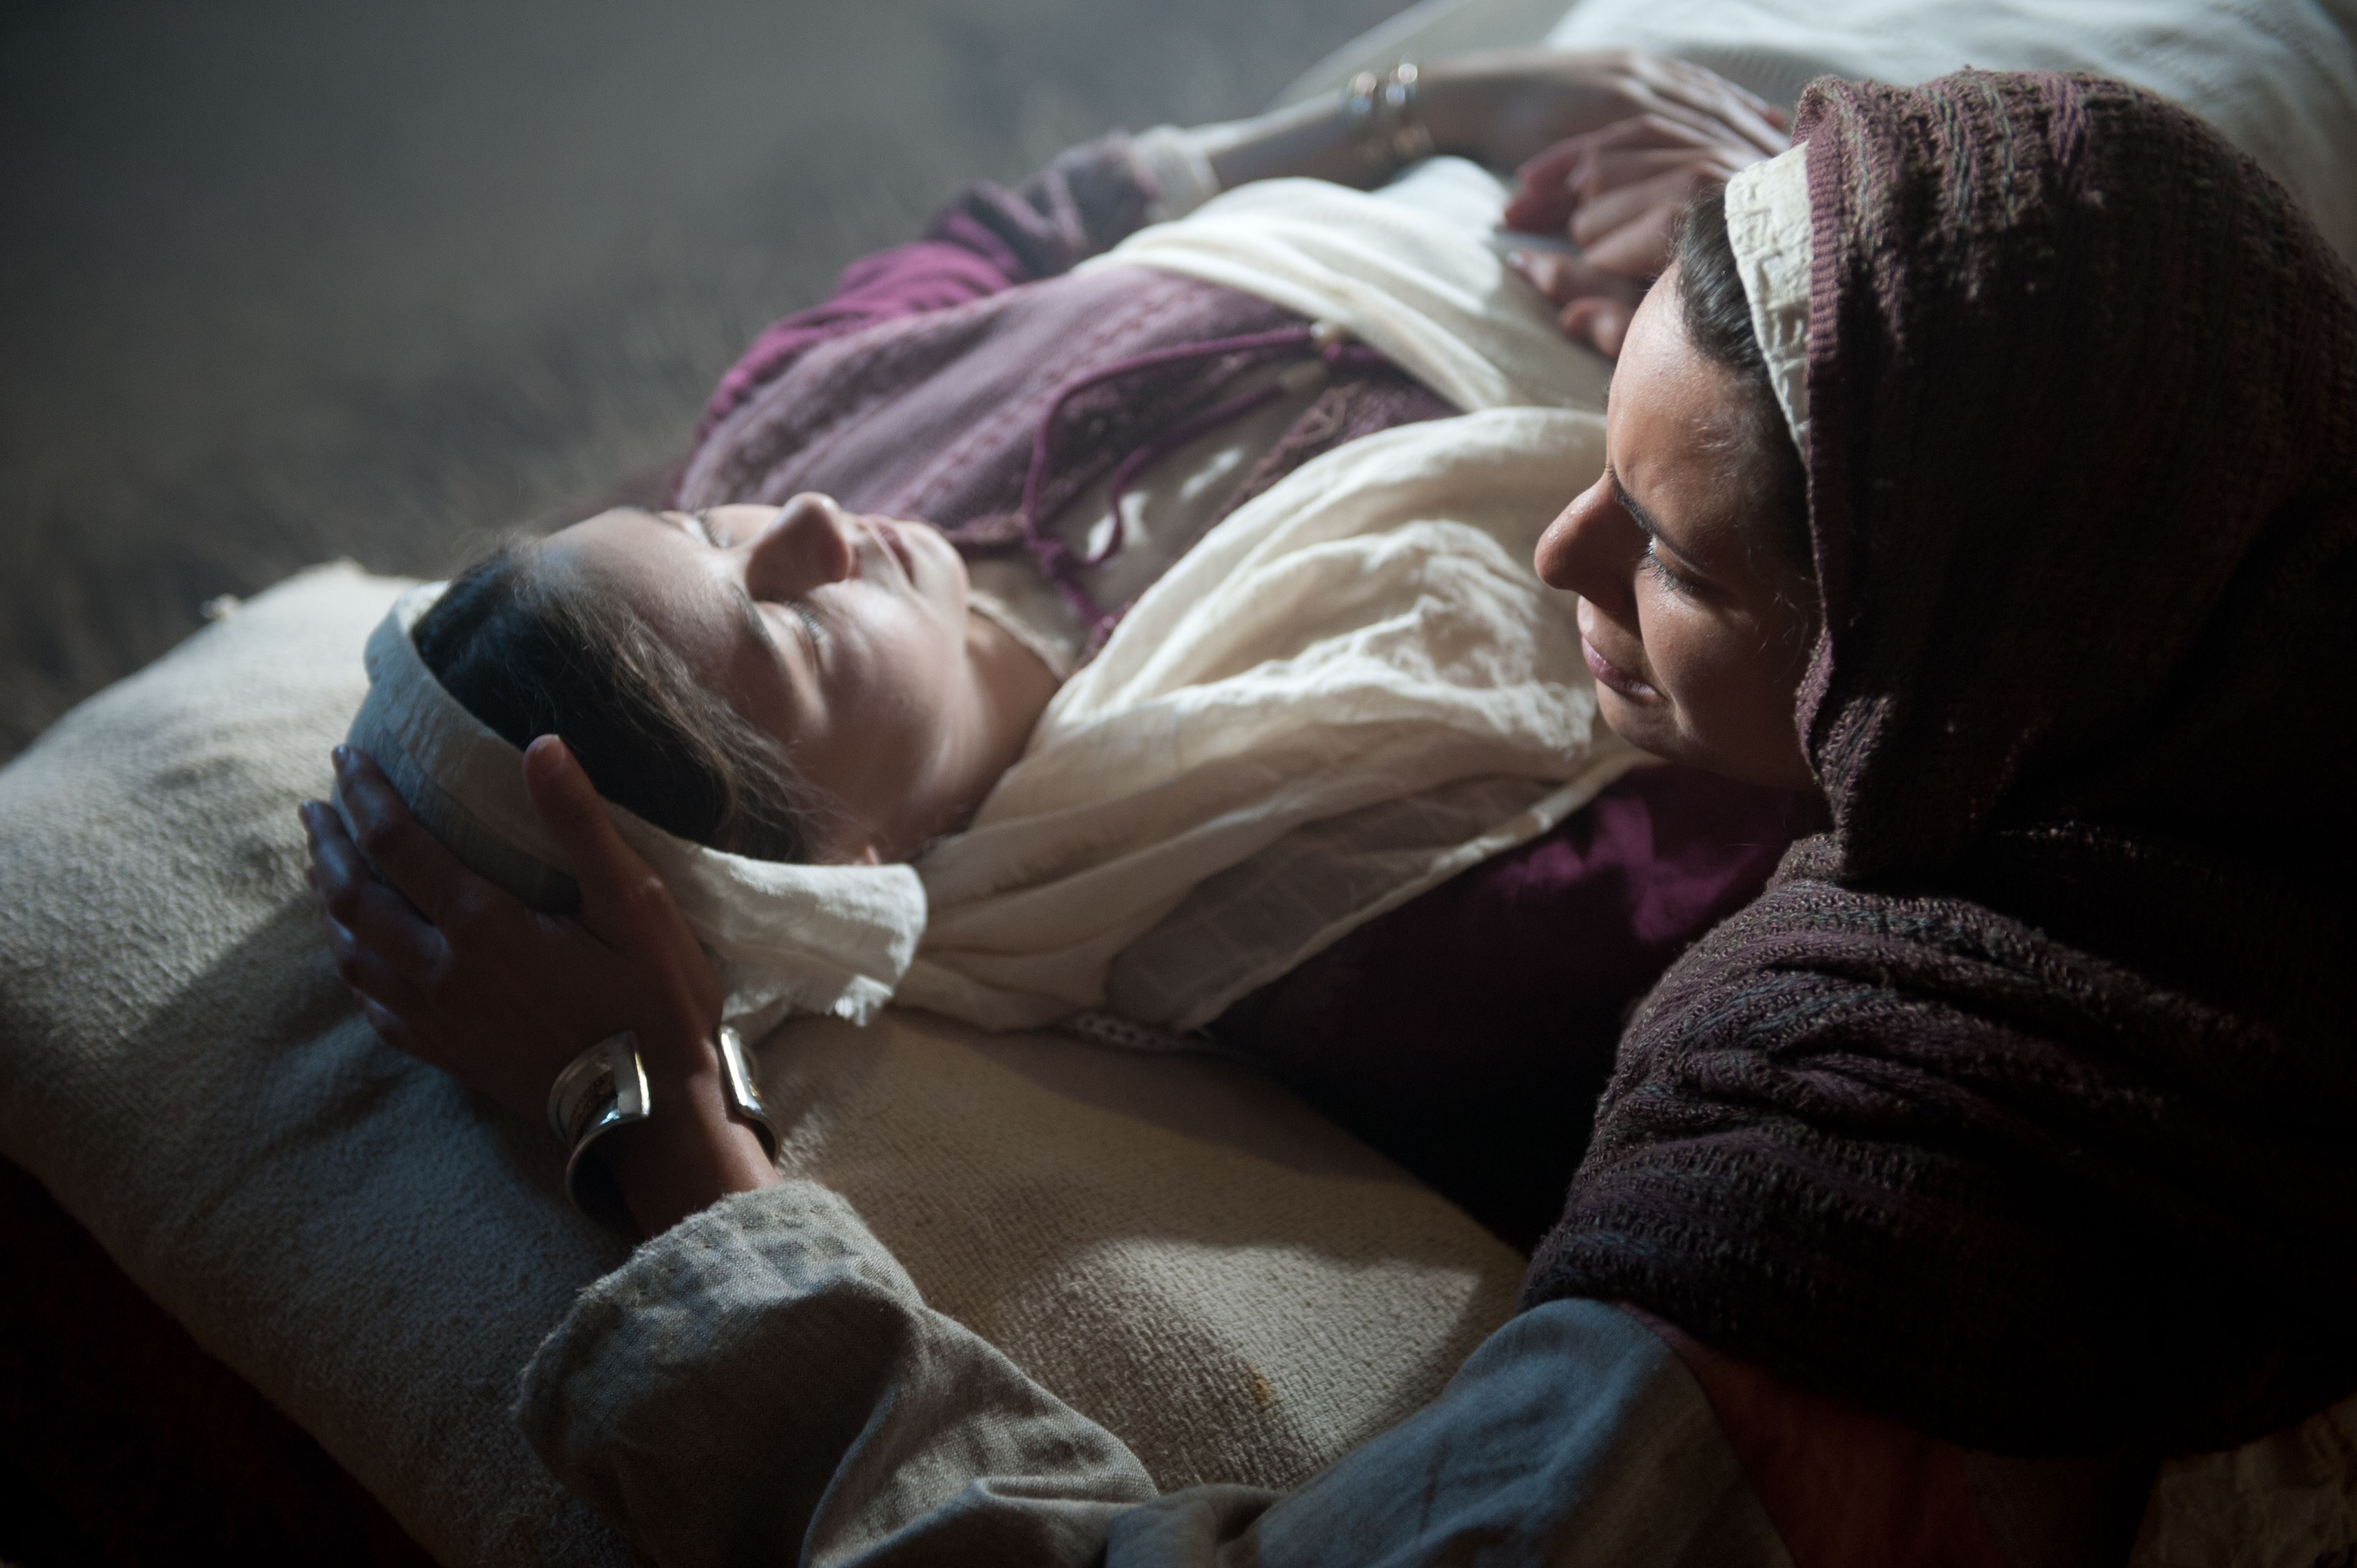 Jairus's wife mourning the death of her daughter.